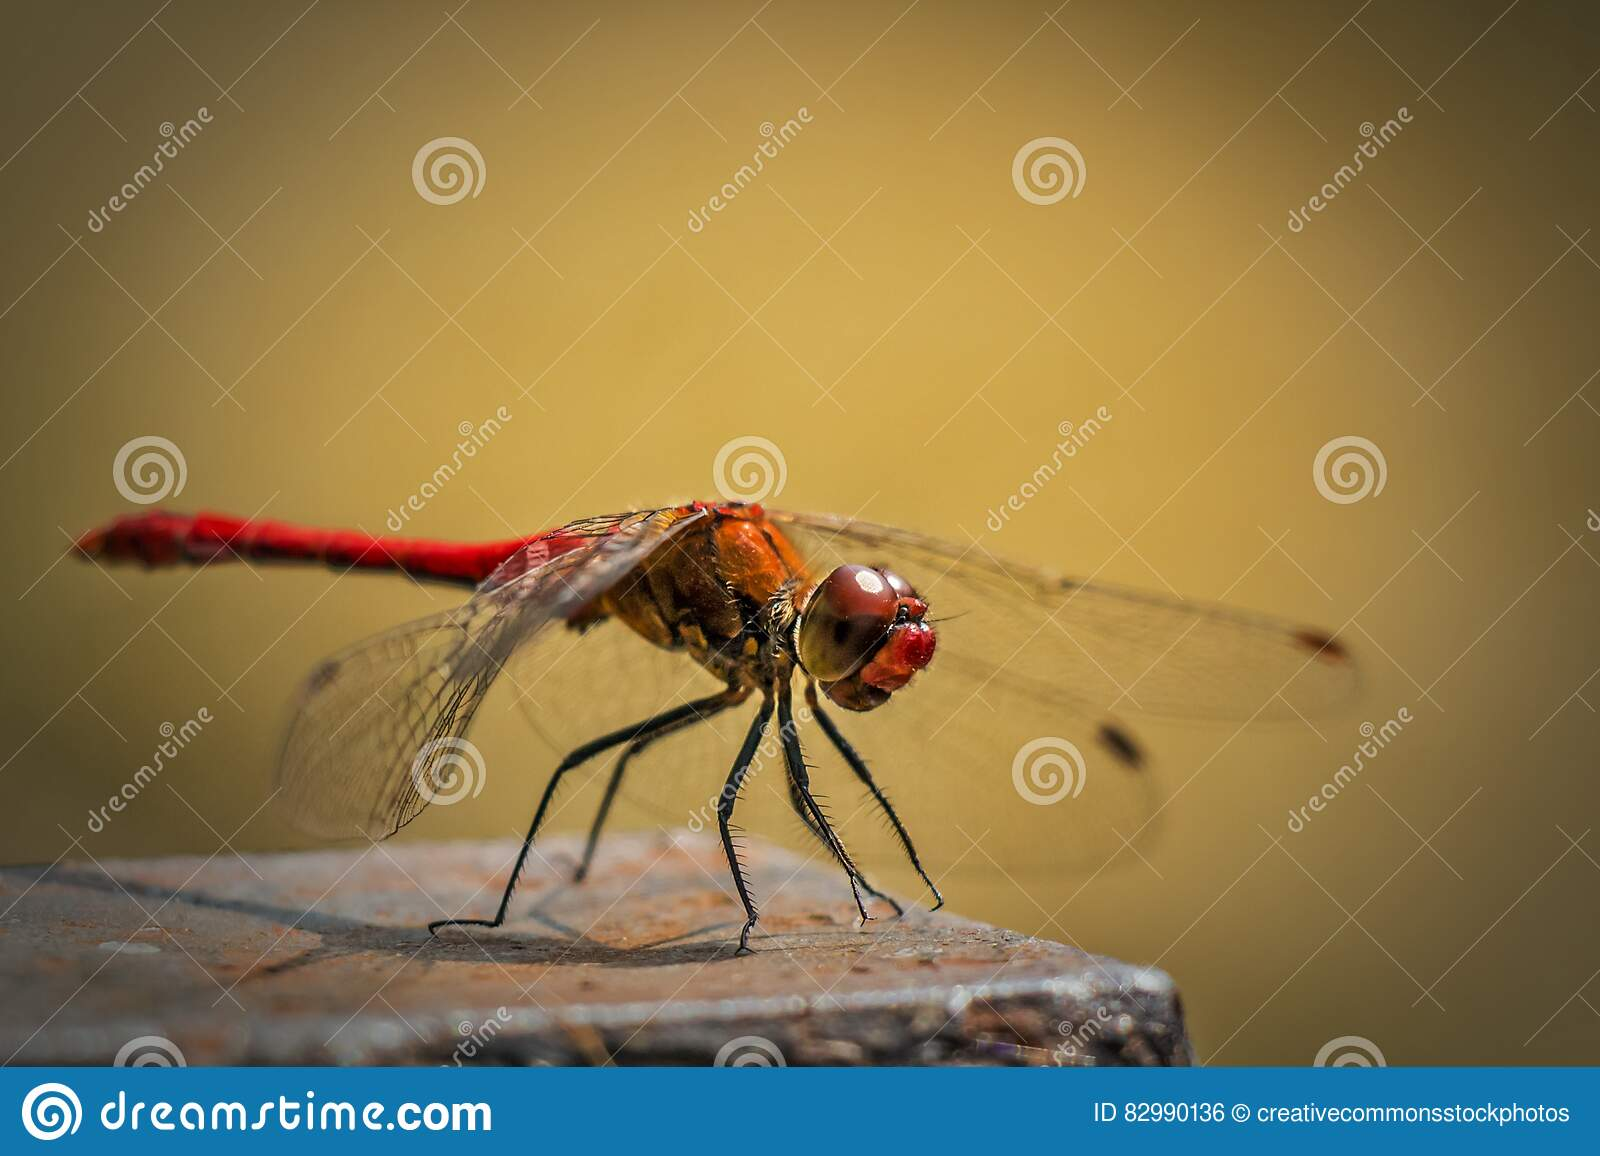 Red and Orange Dragonfly